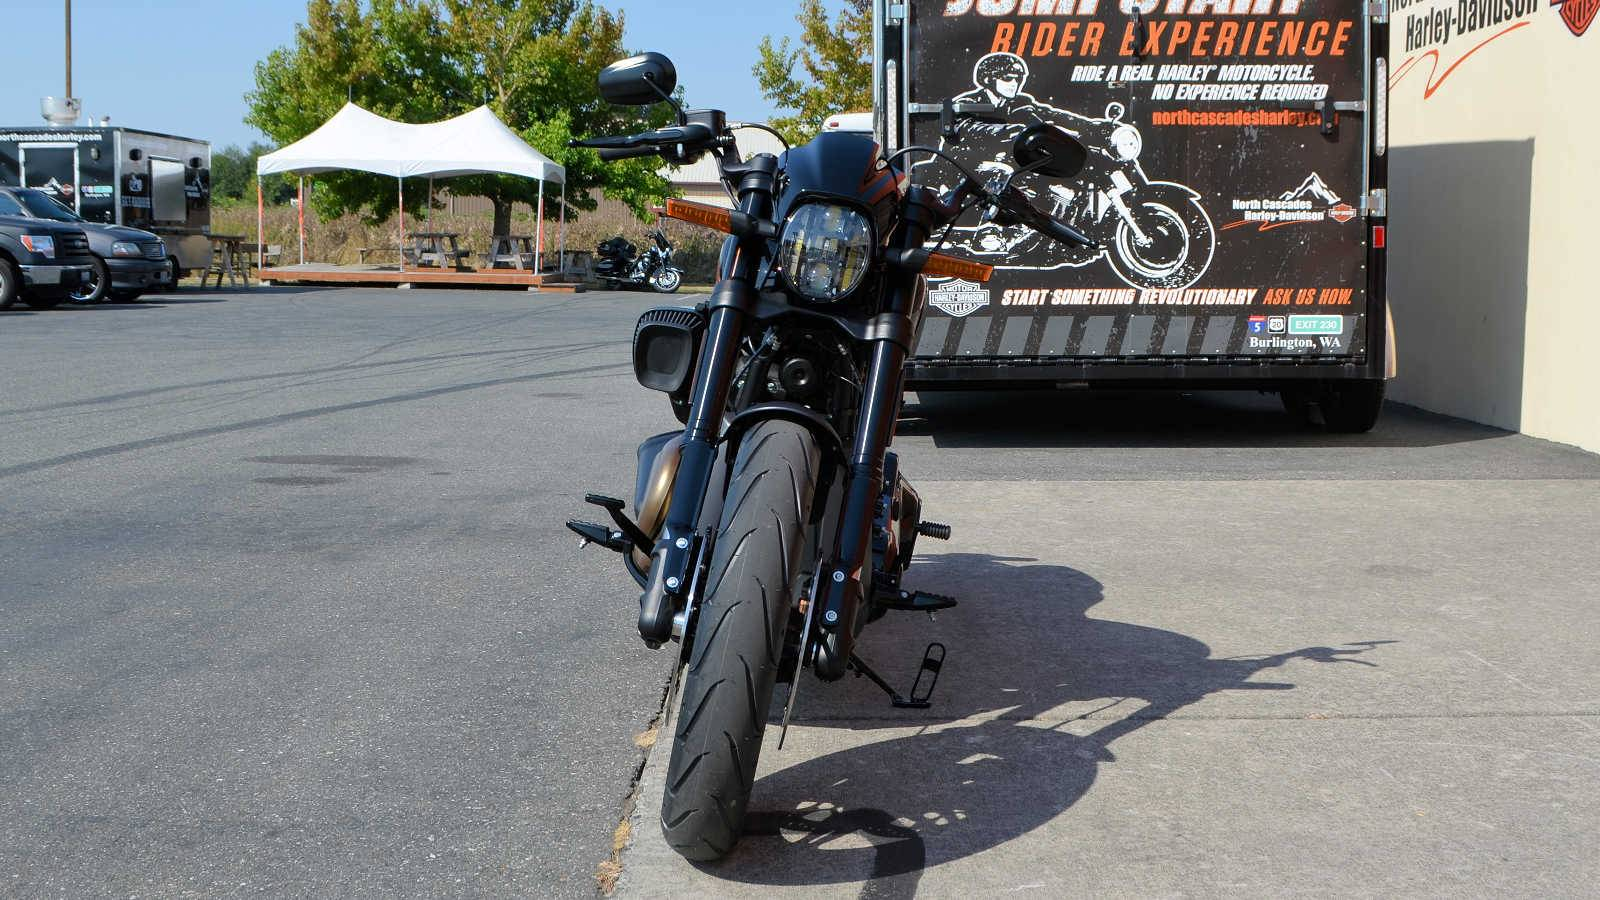 2019 Harley-Davidson FXDR™ 114 in Burlington, Washington - Photo 5